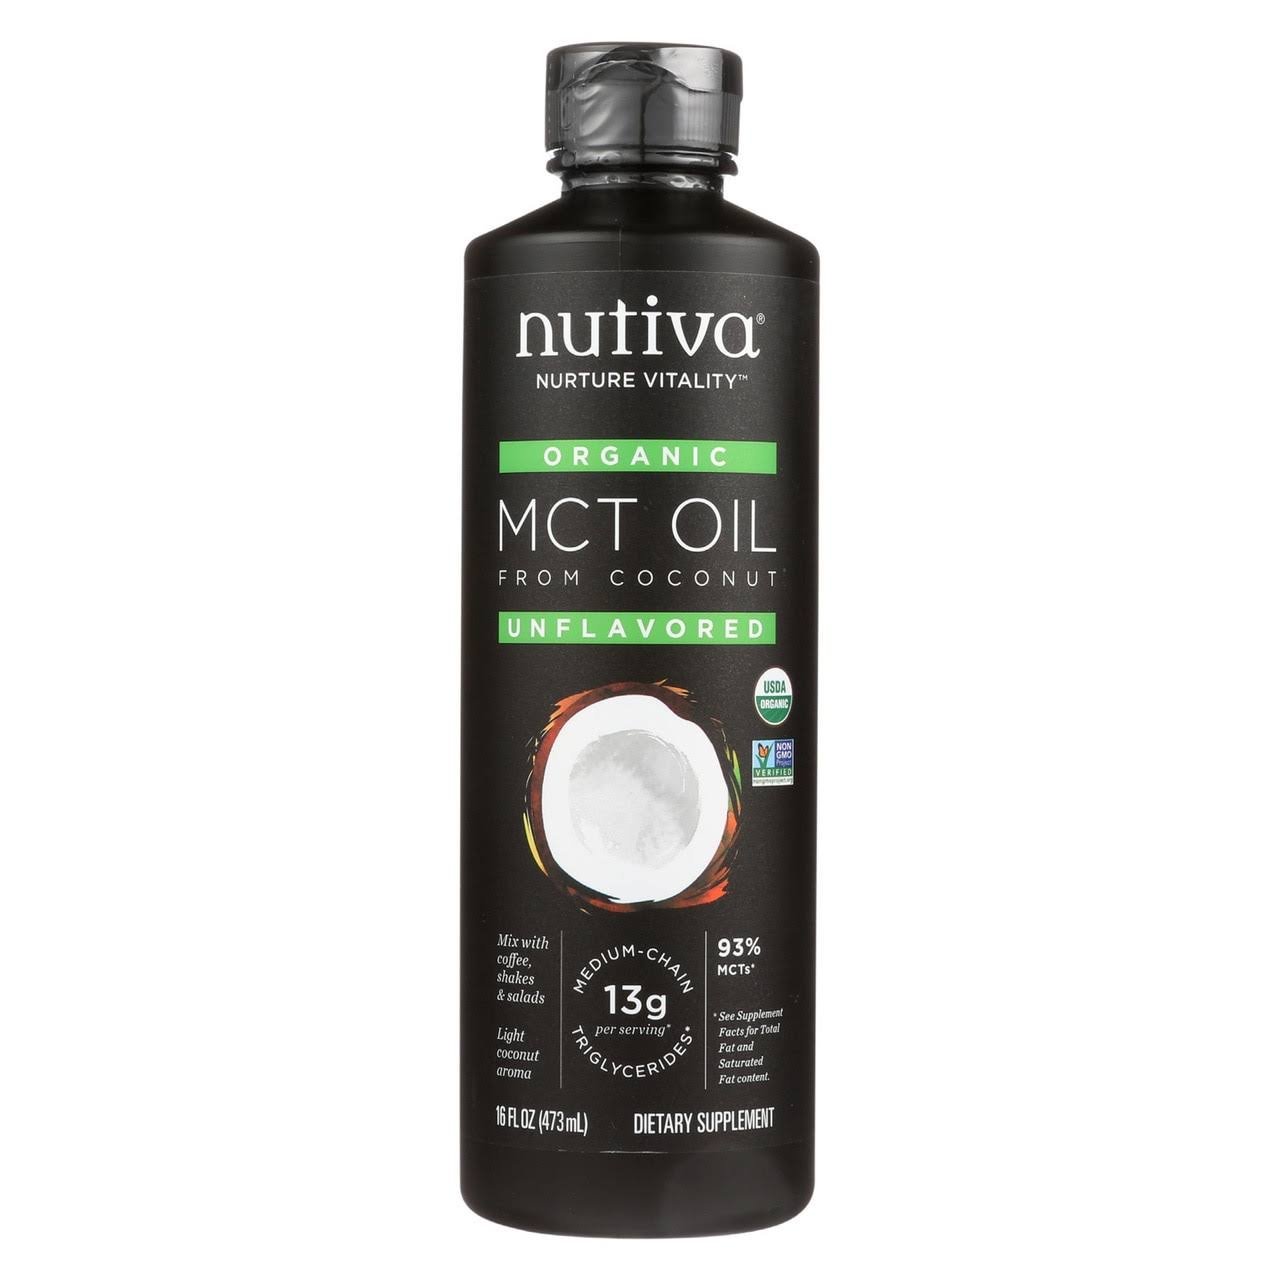 Nutiva Organic MCT Oil from Coconut Unflavored 16 fl oz